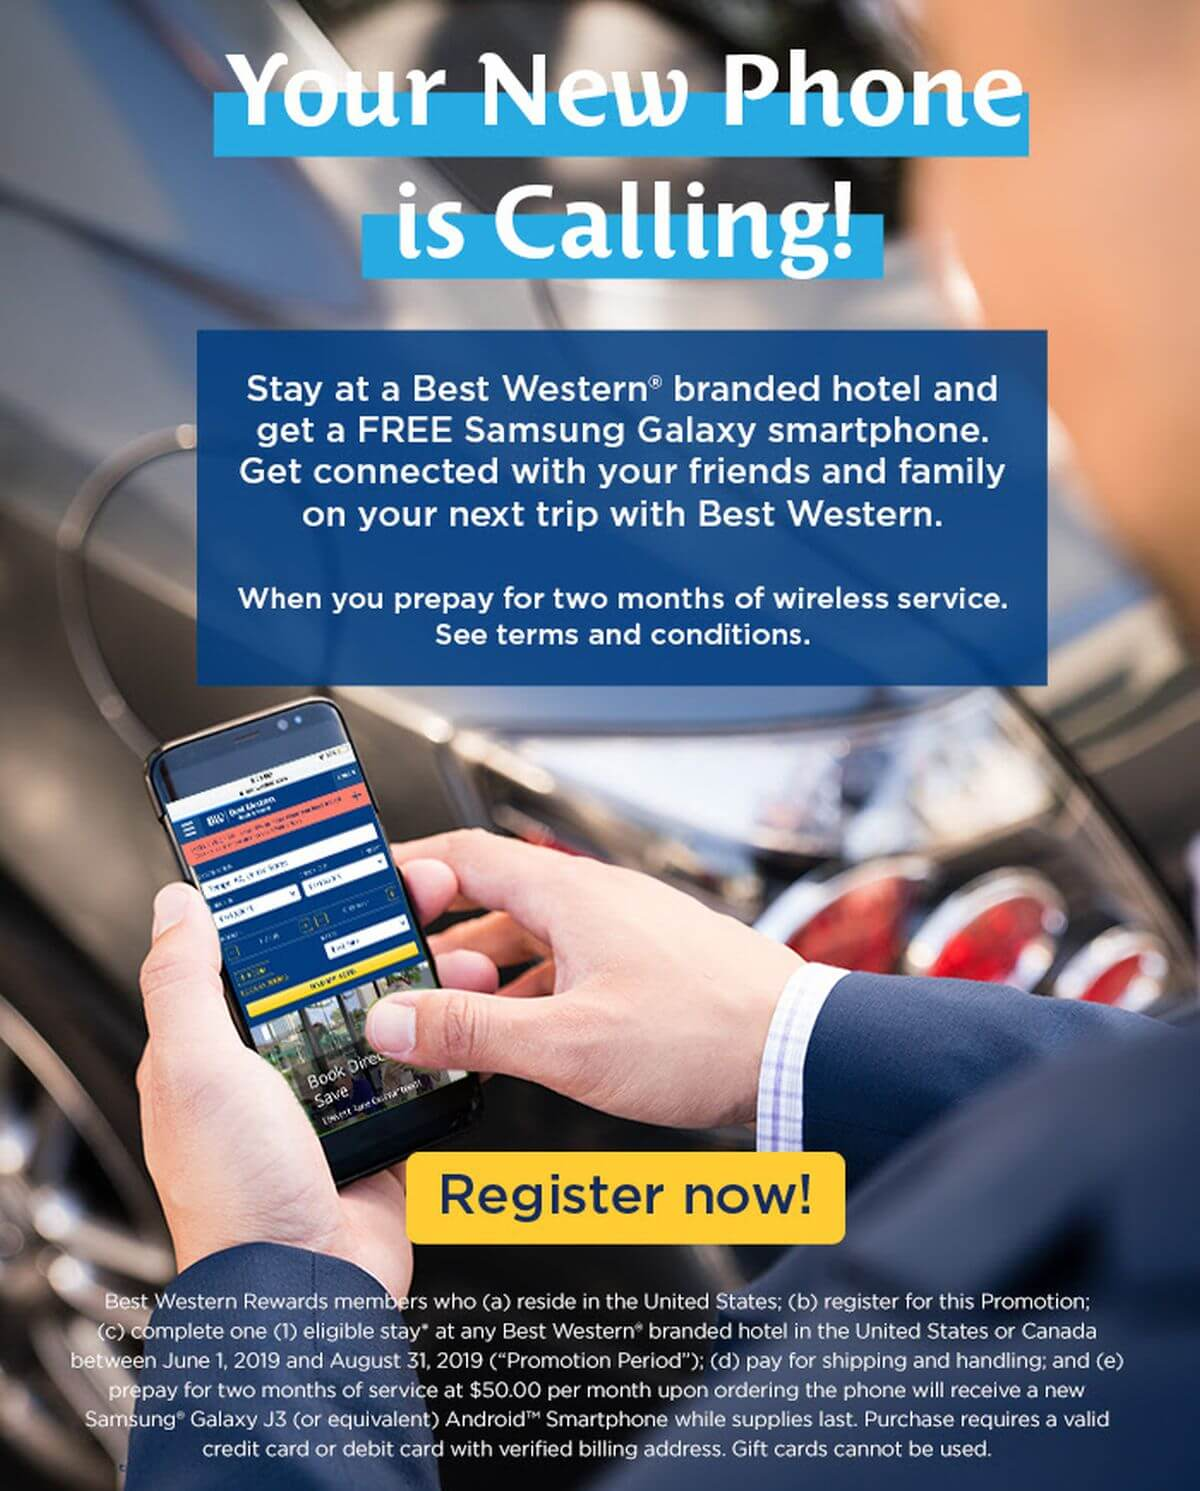 Best Western Wants to Give You a Free Samsung Galaxy J3